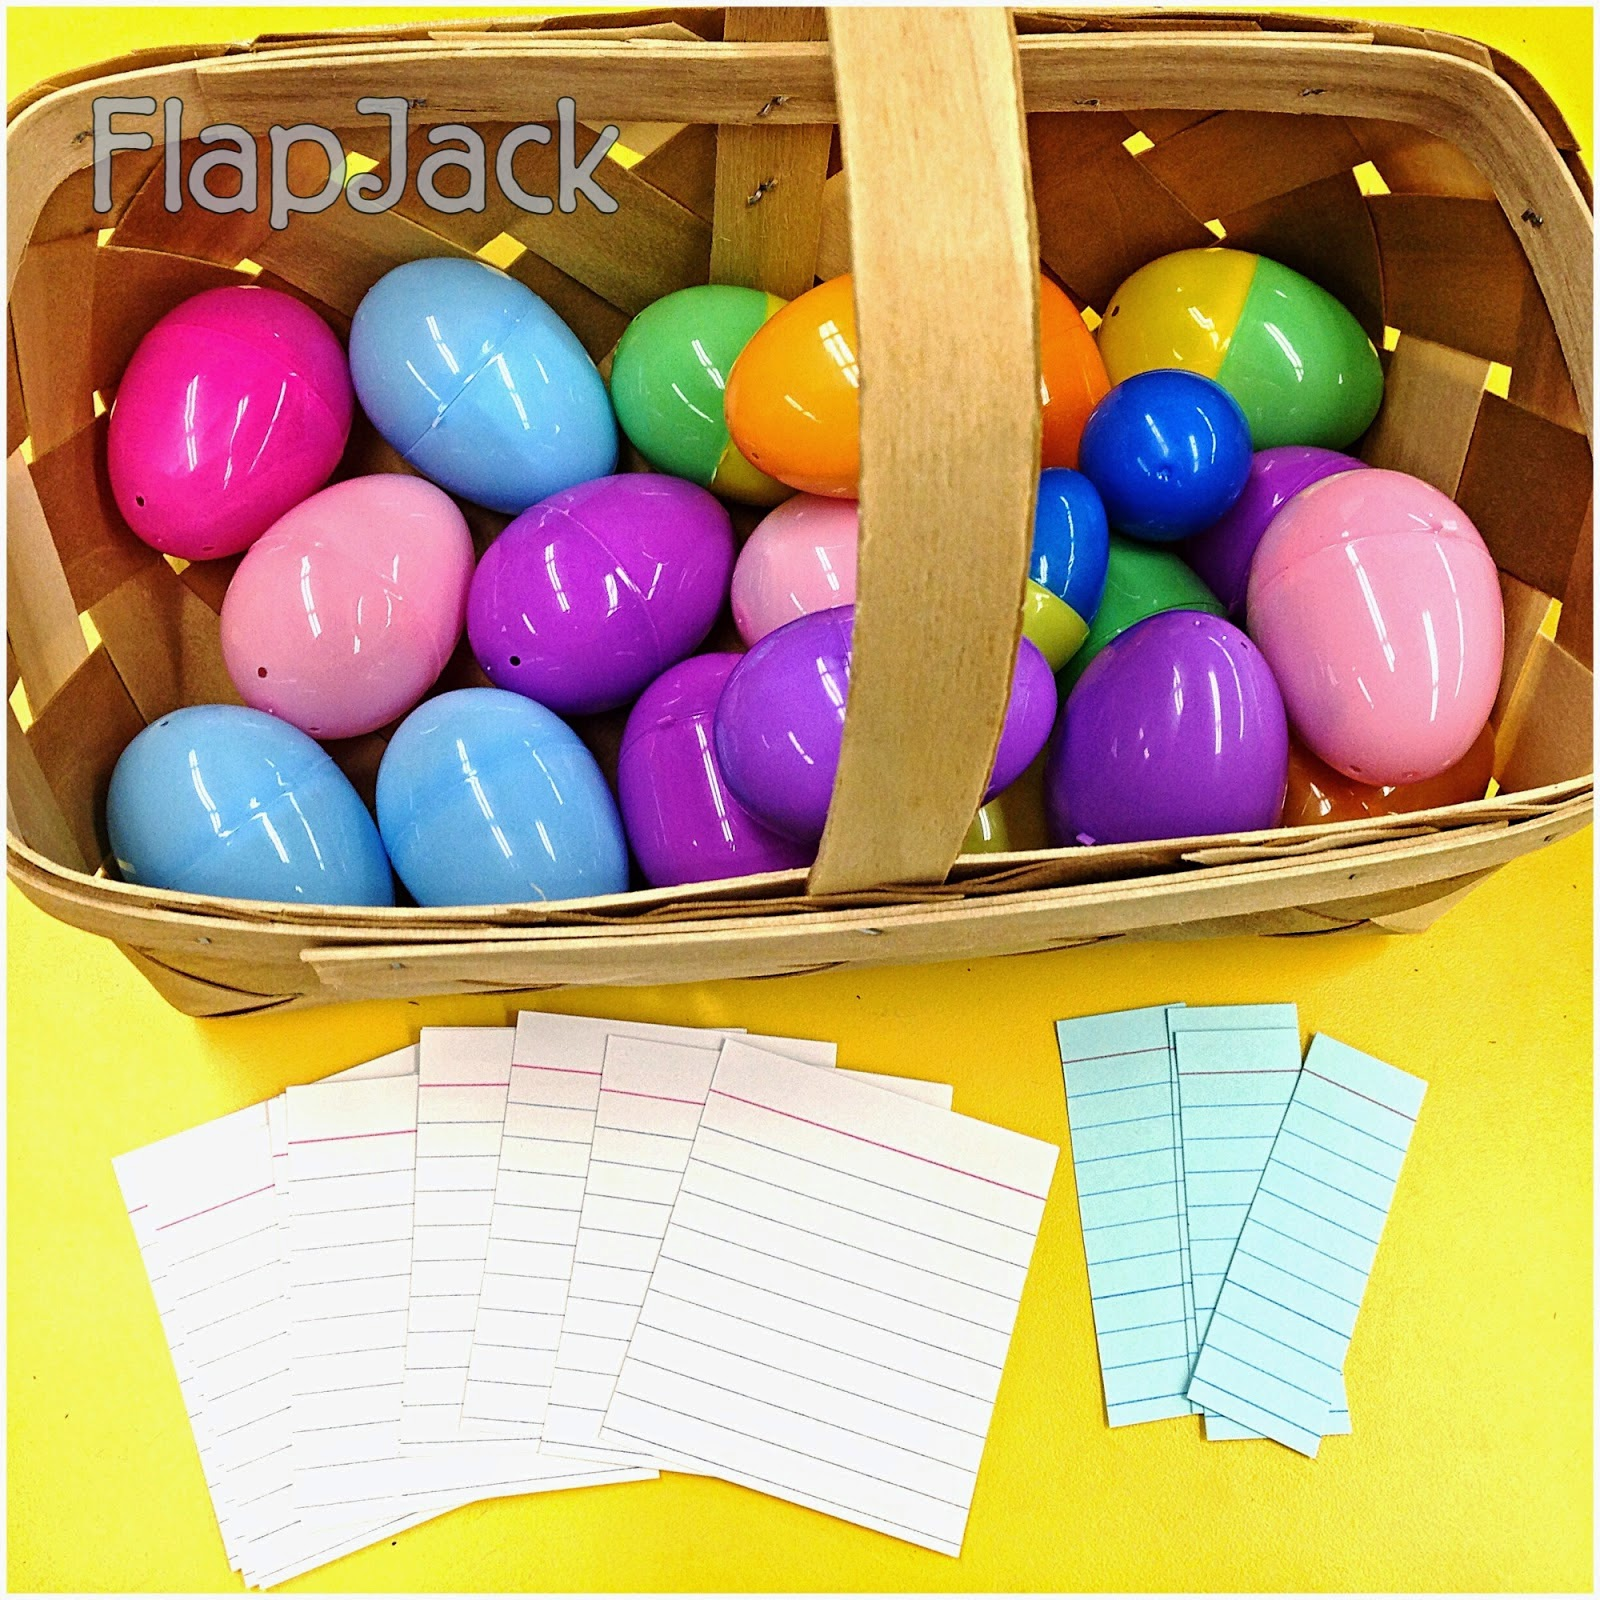 http://www.flapjackeducation.com/2014/04/bright-ideas-student-created-egg-hunt.html